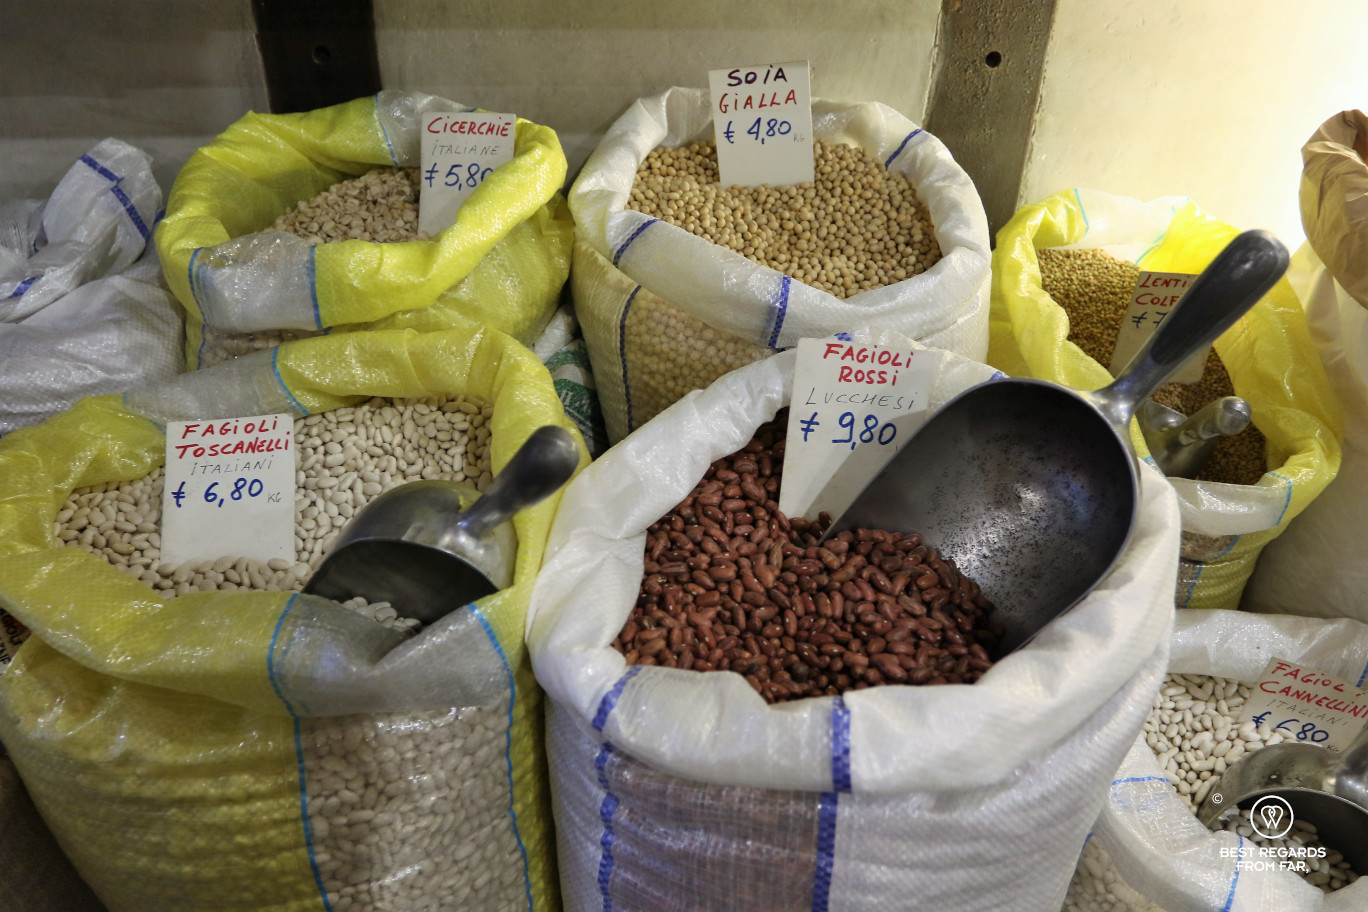 Large bags of beans in a store in Lucca